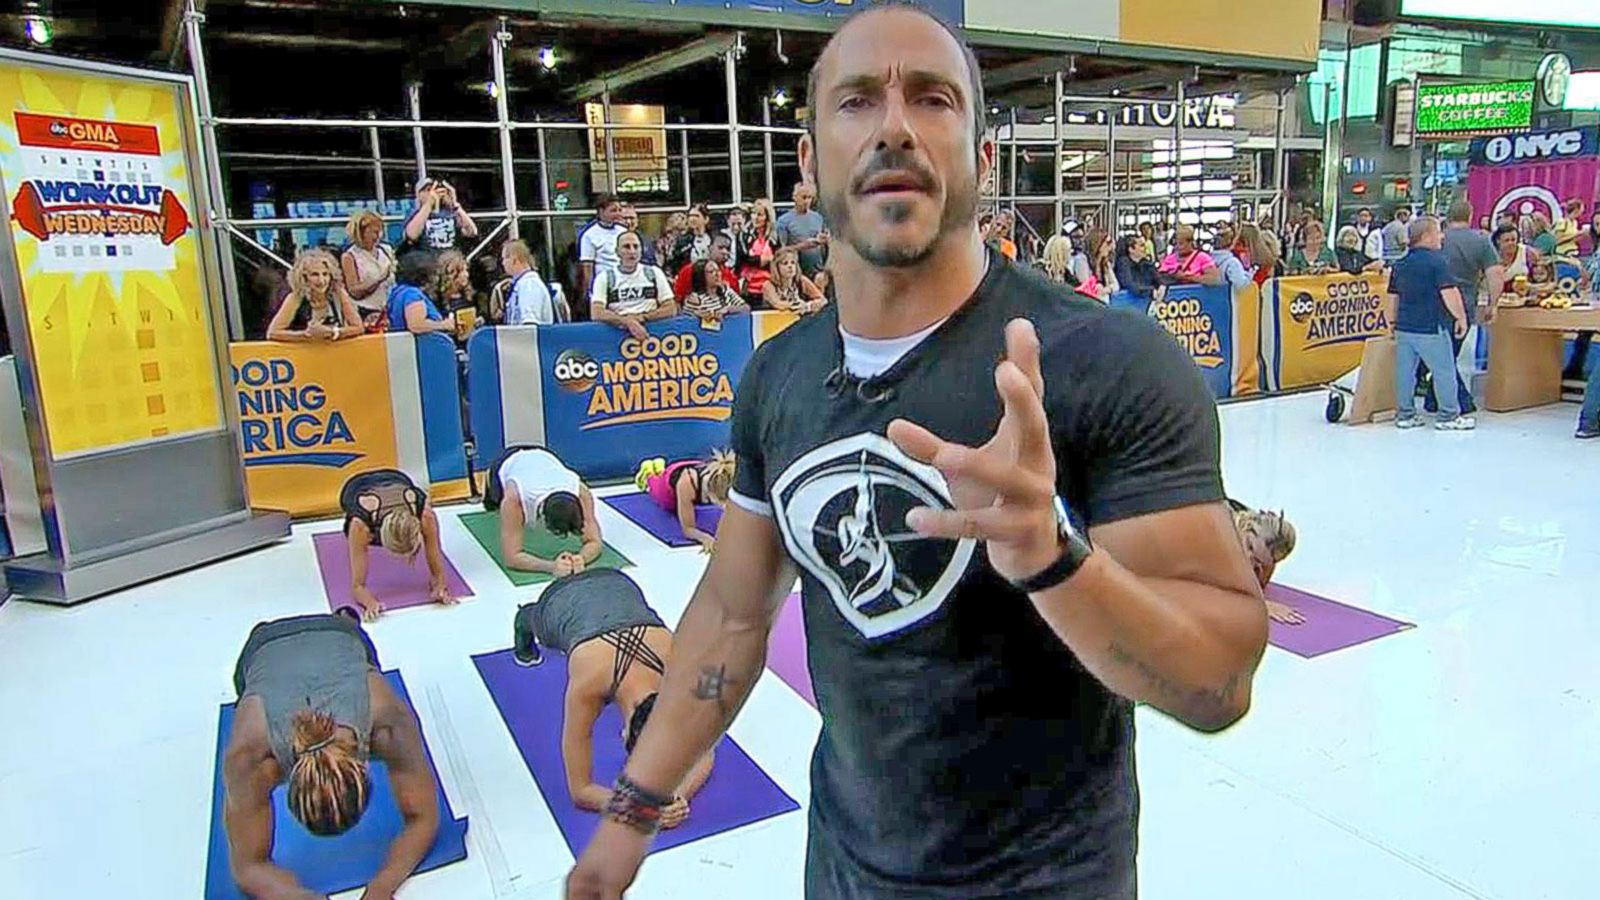 VIDEO: 'GMA' 'Workout Wednesday' With Sebastien Lagree